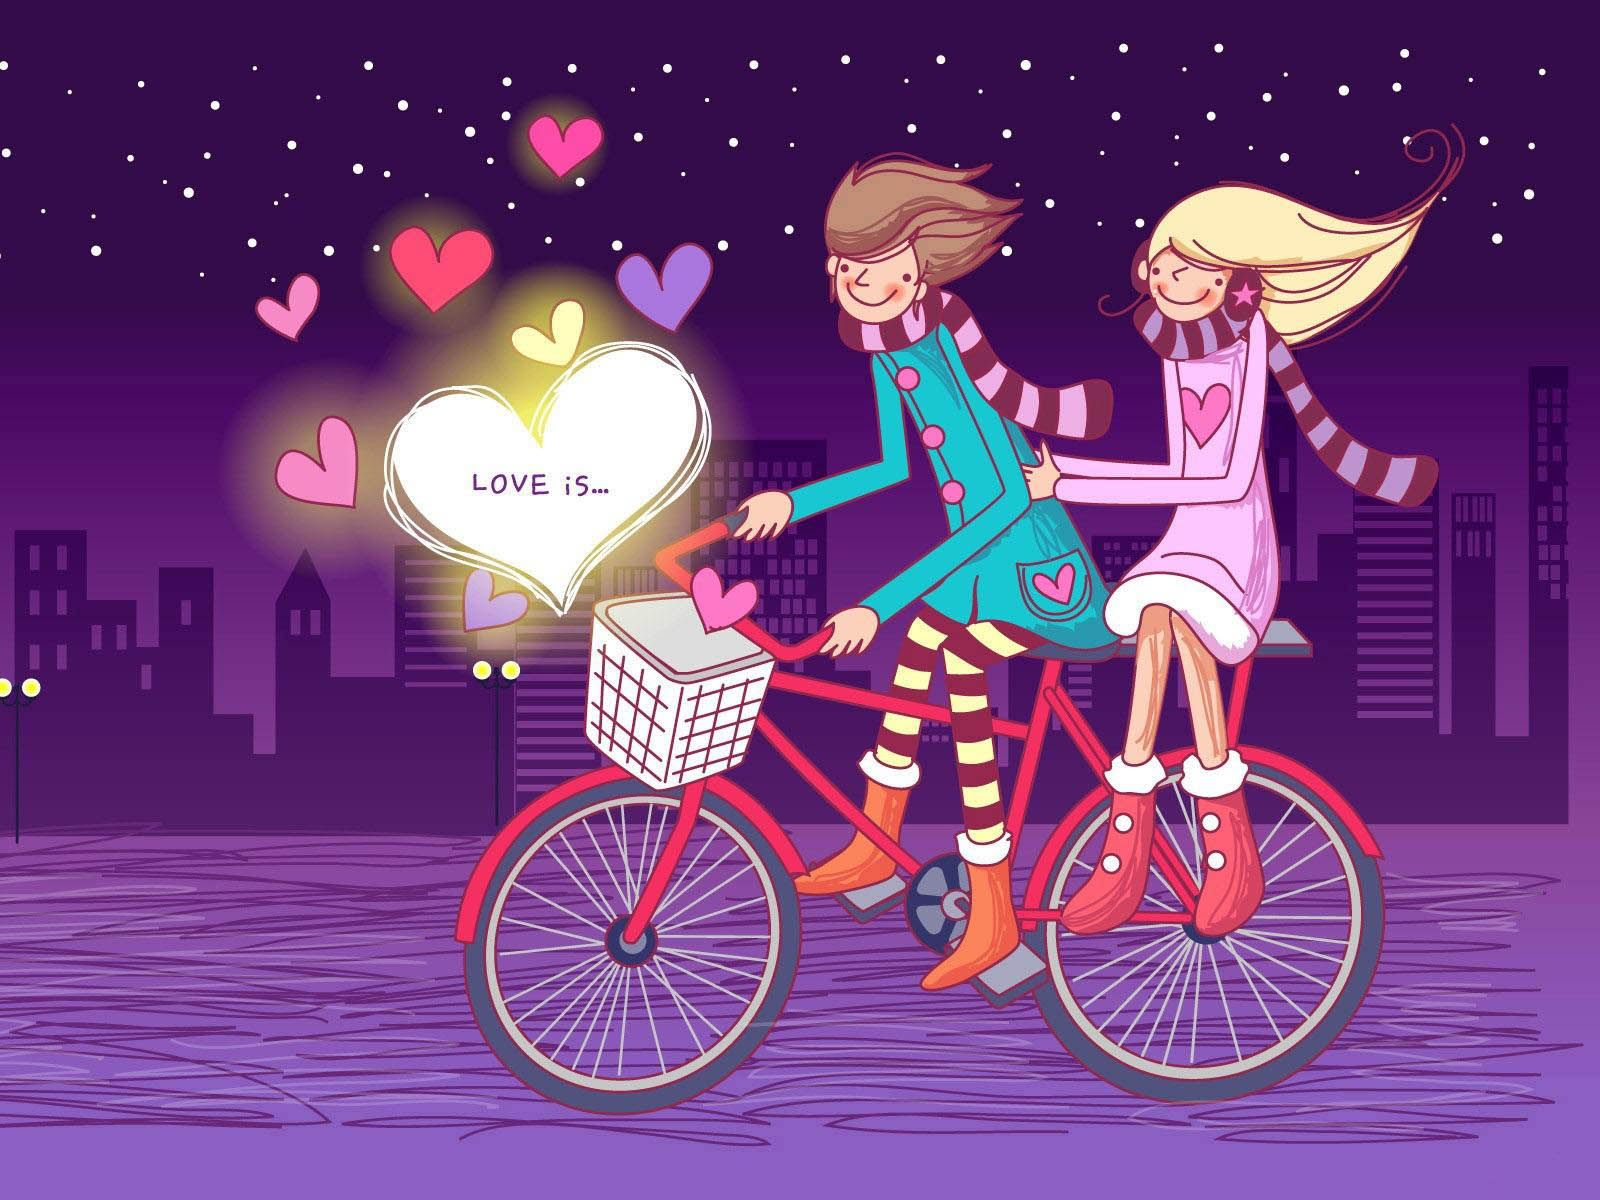 Romantic Love Wallpapers Top Free Romantic Love Backgrounds